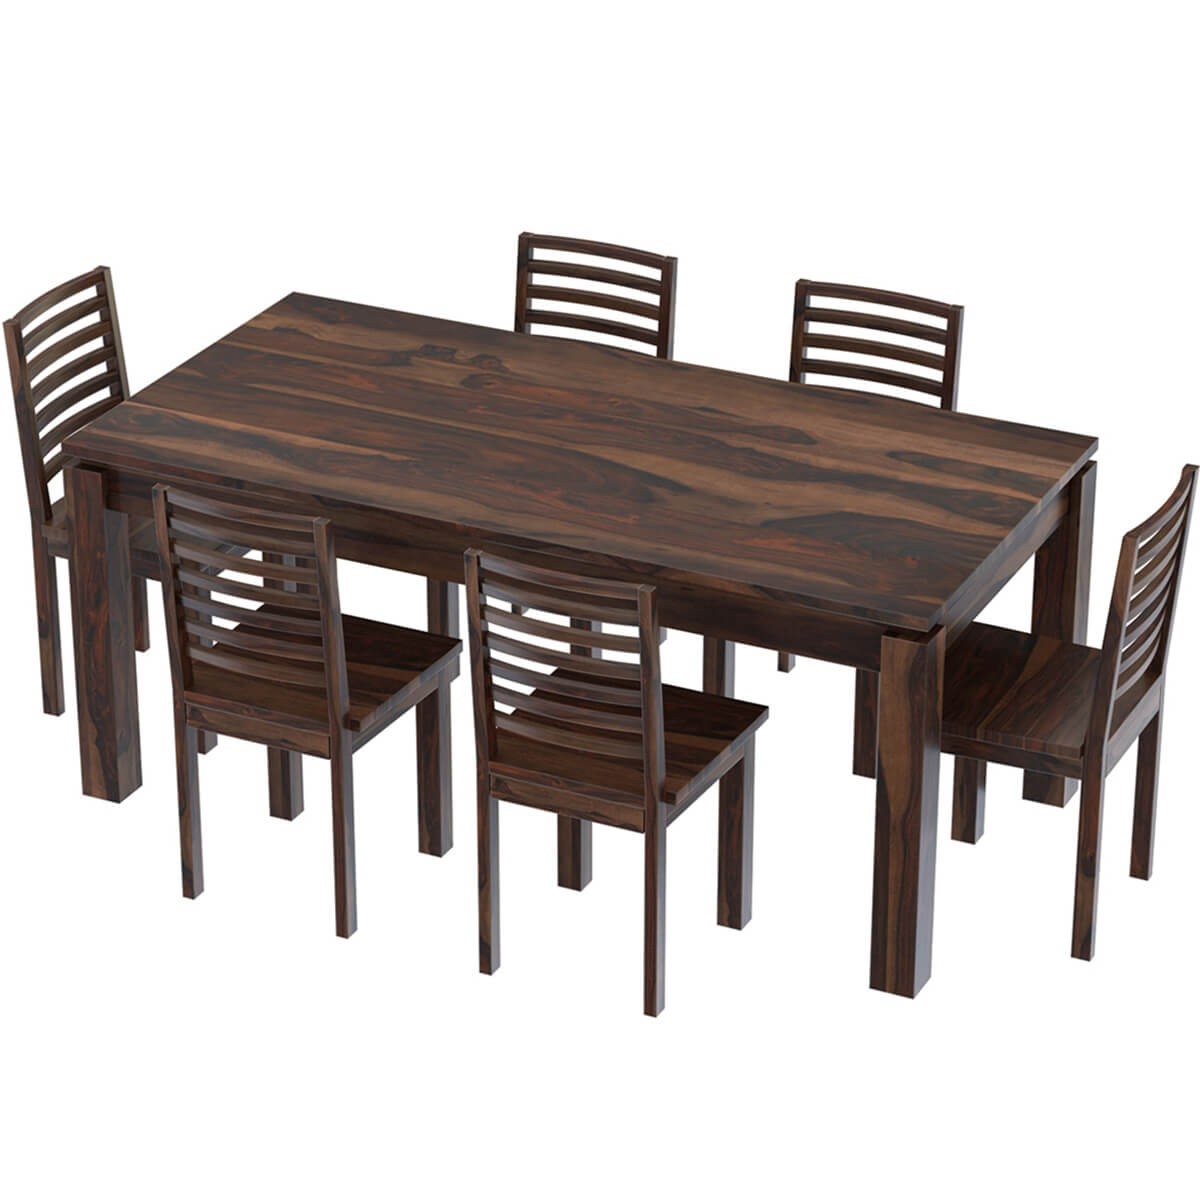 Classic comfort mango wood dining table upholstered for Mango wood dining table